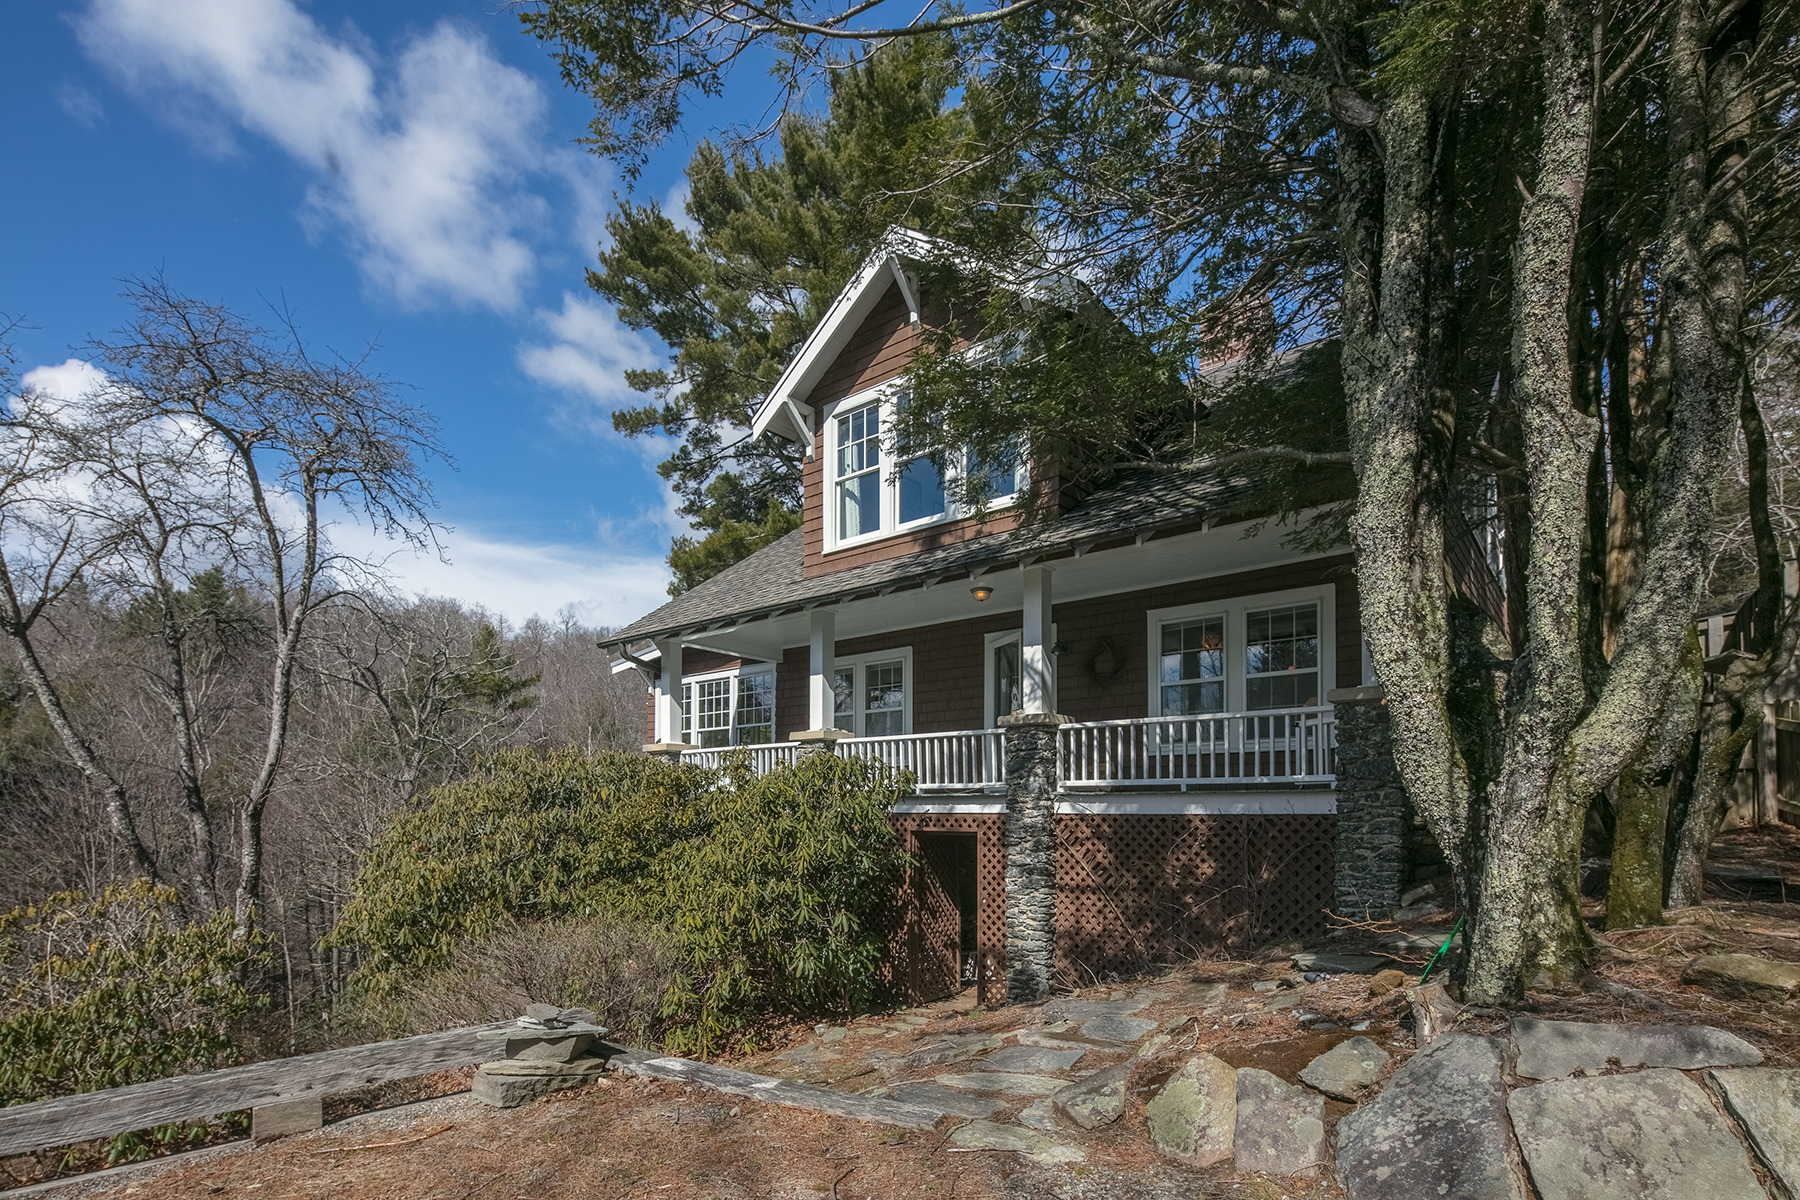 Single Family Home for Sale at Blowing Rock 250 Globe Road, Blowing Rock, North Carolina 28605 United States